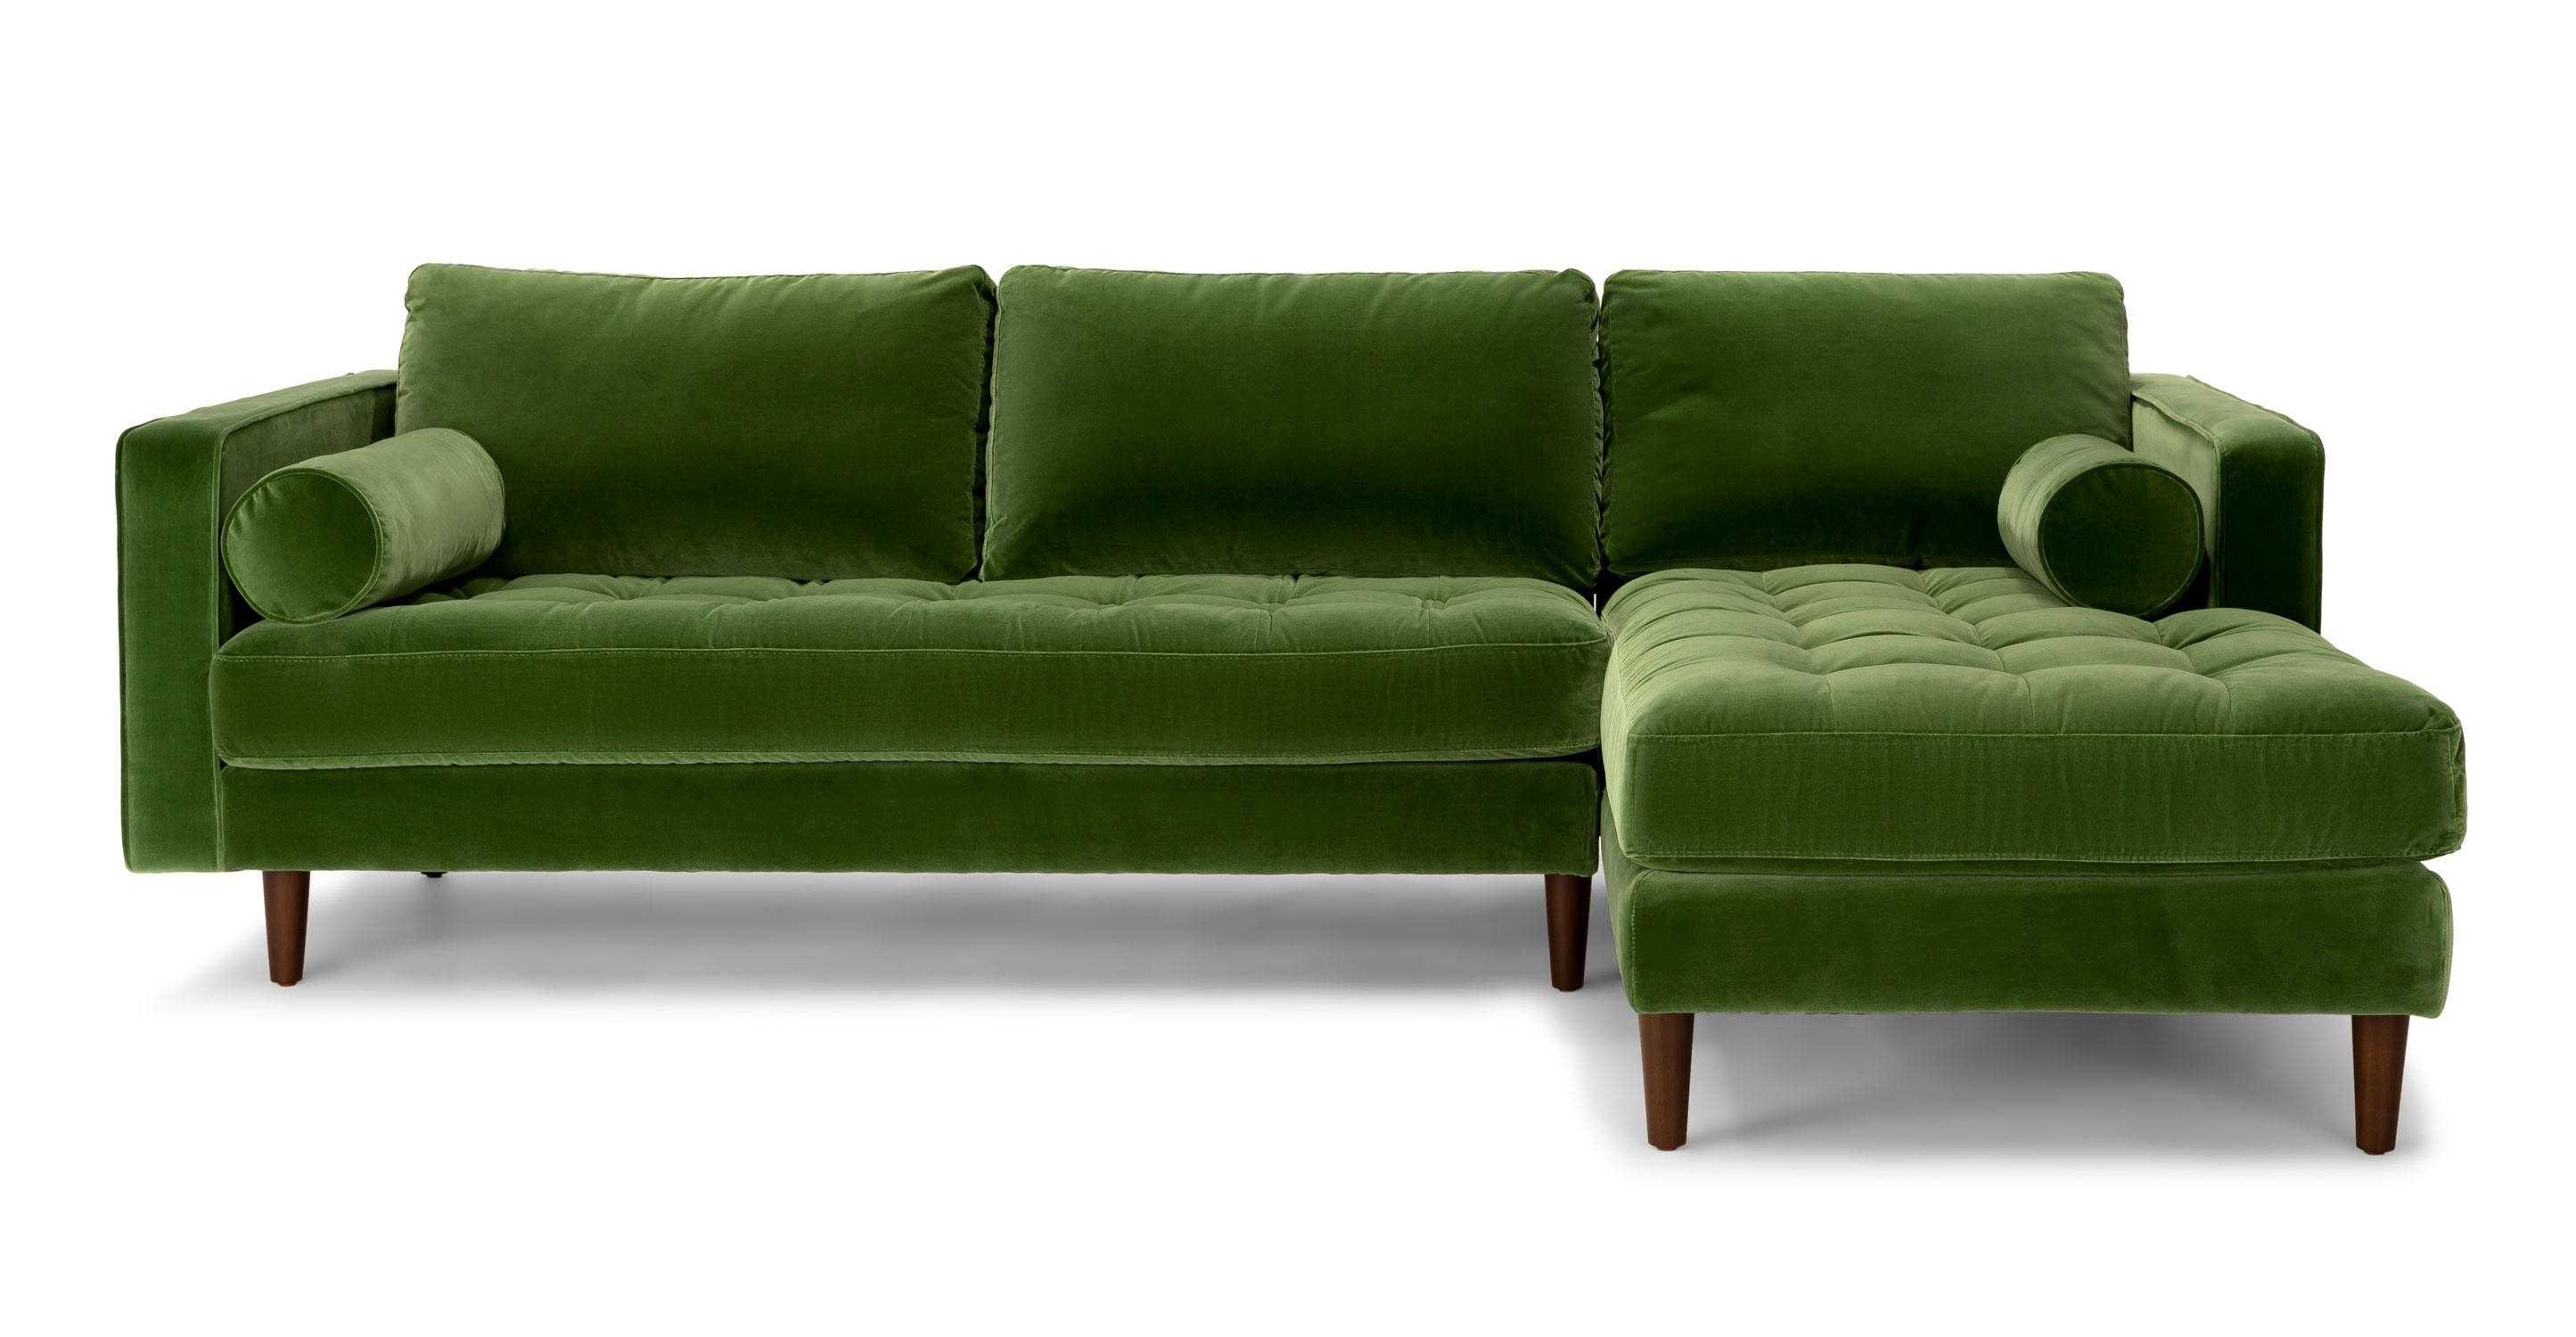 Velvet Sectional Sofa | Demand Sofas Set With Regard To Velvet Sofas Sectionals (Image 16 of 20)